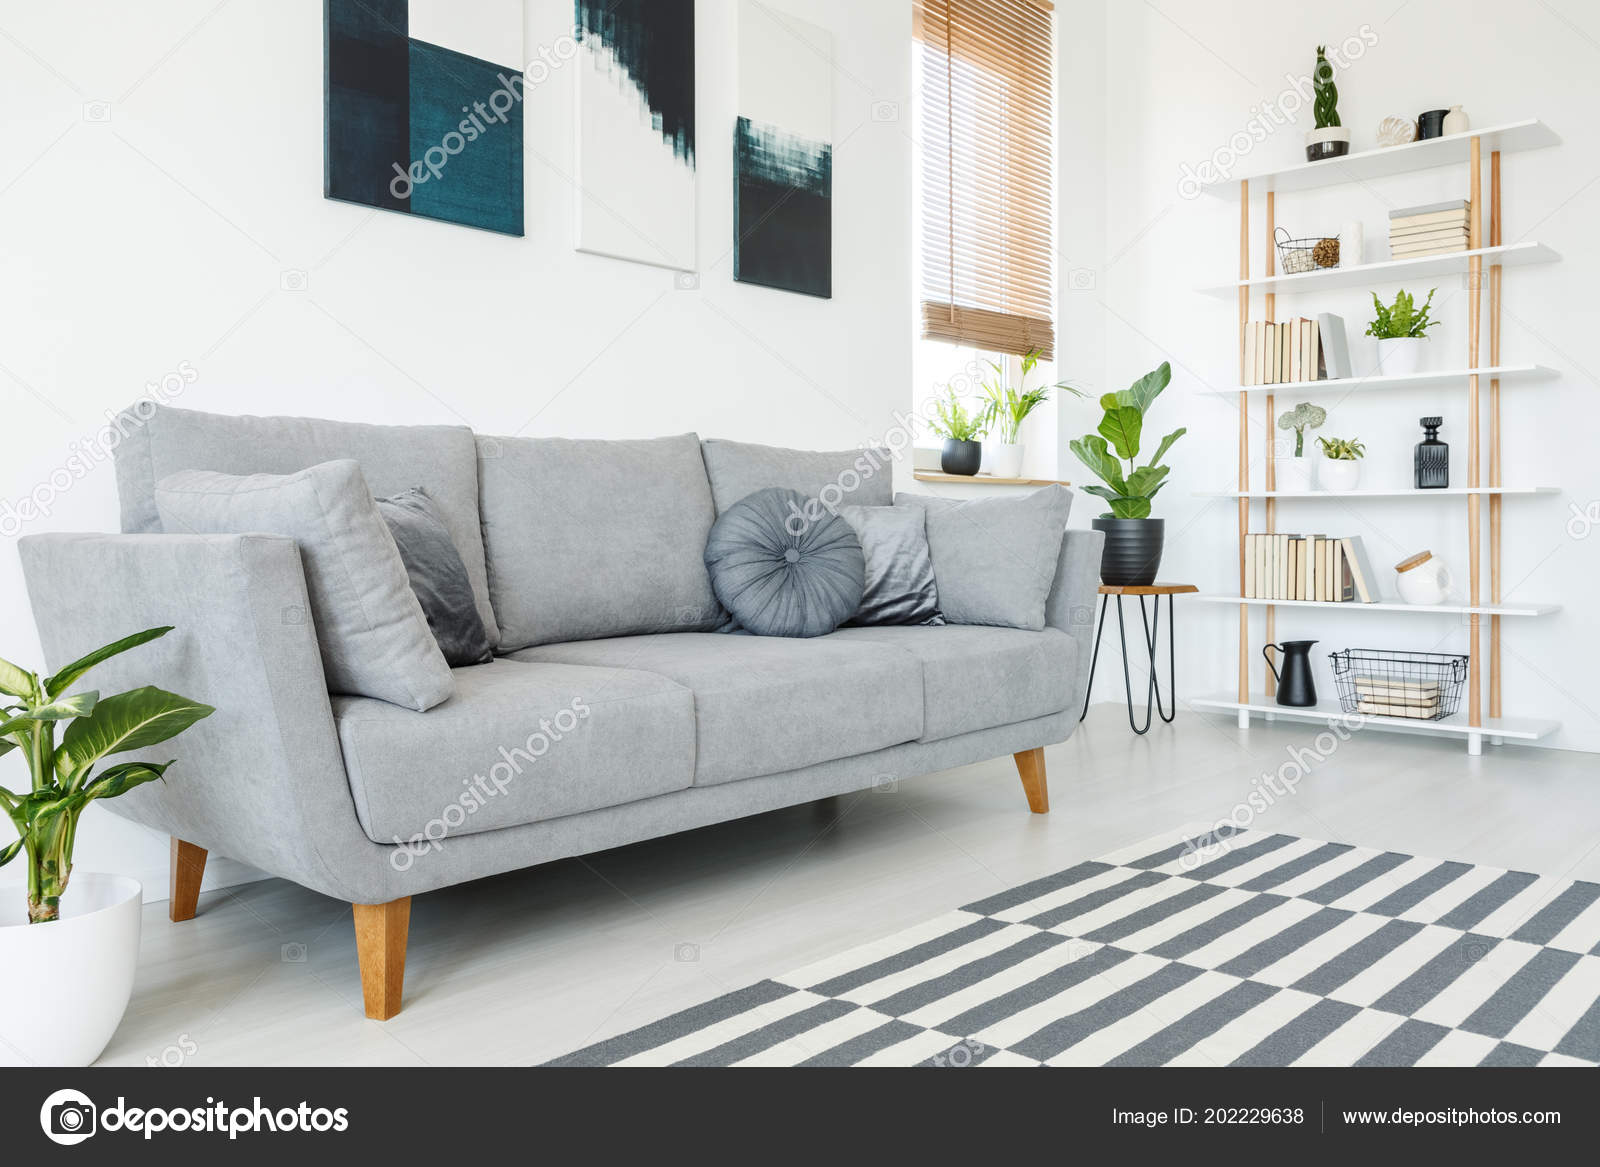 Cushions Grey Couch Carpet Minimal Living Room Interior Plant Posters U2014  Stock Photo